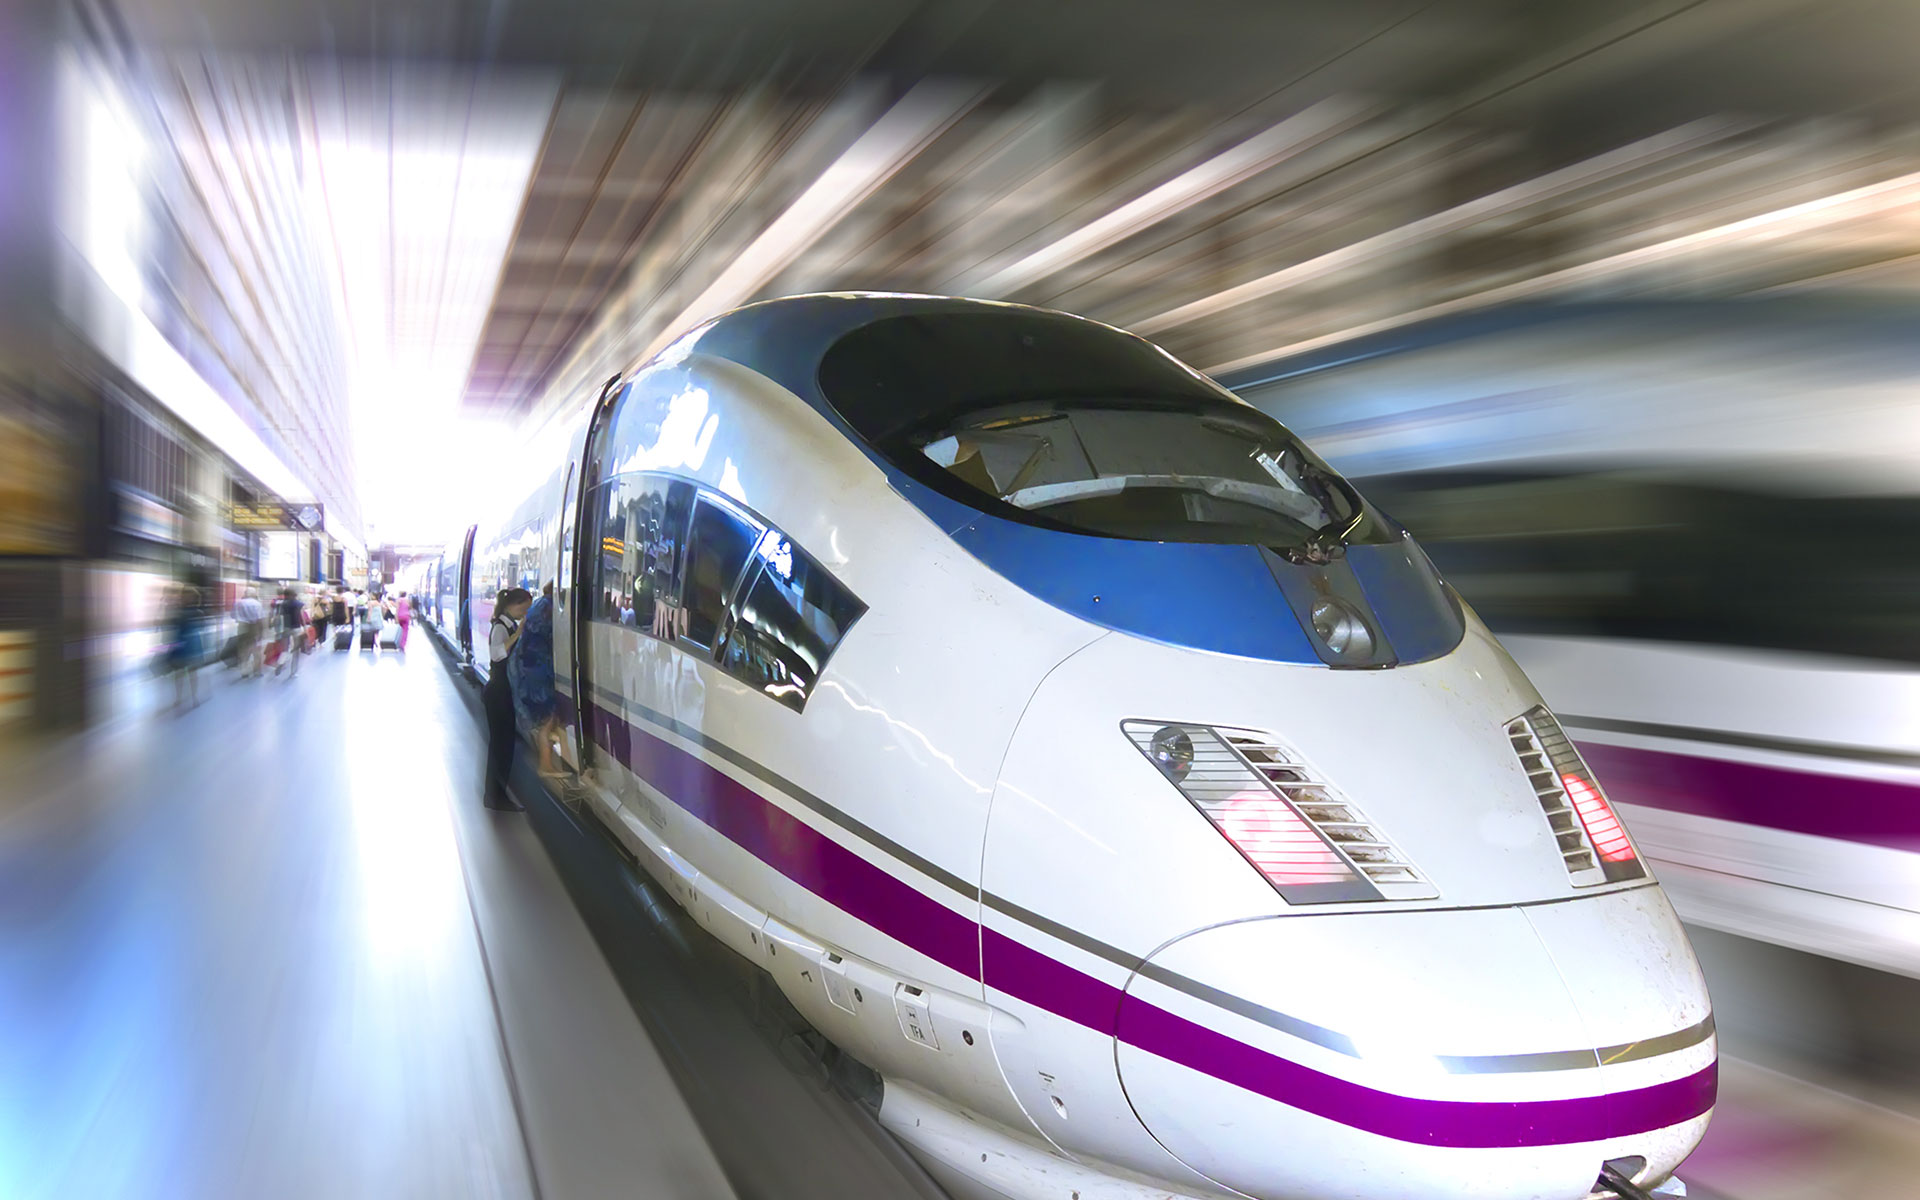 2014 sees the introduction of a new direct high-speed rail service betweeen Madrid and Marseille operated by RENFE